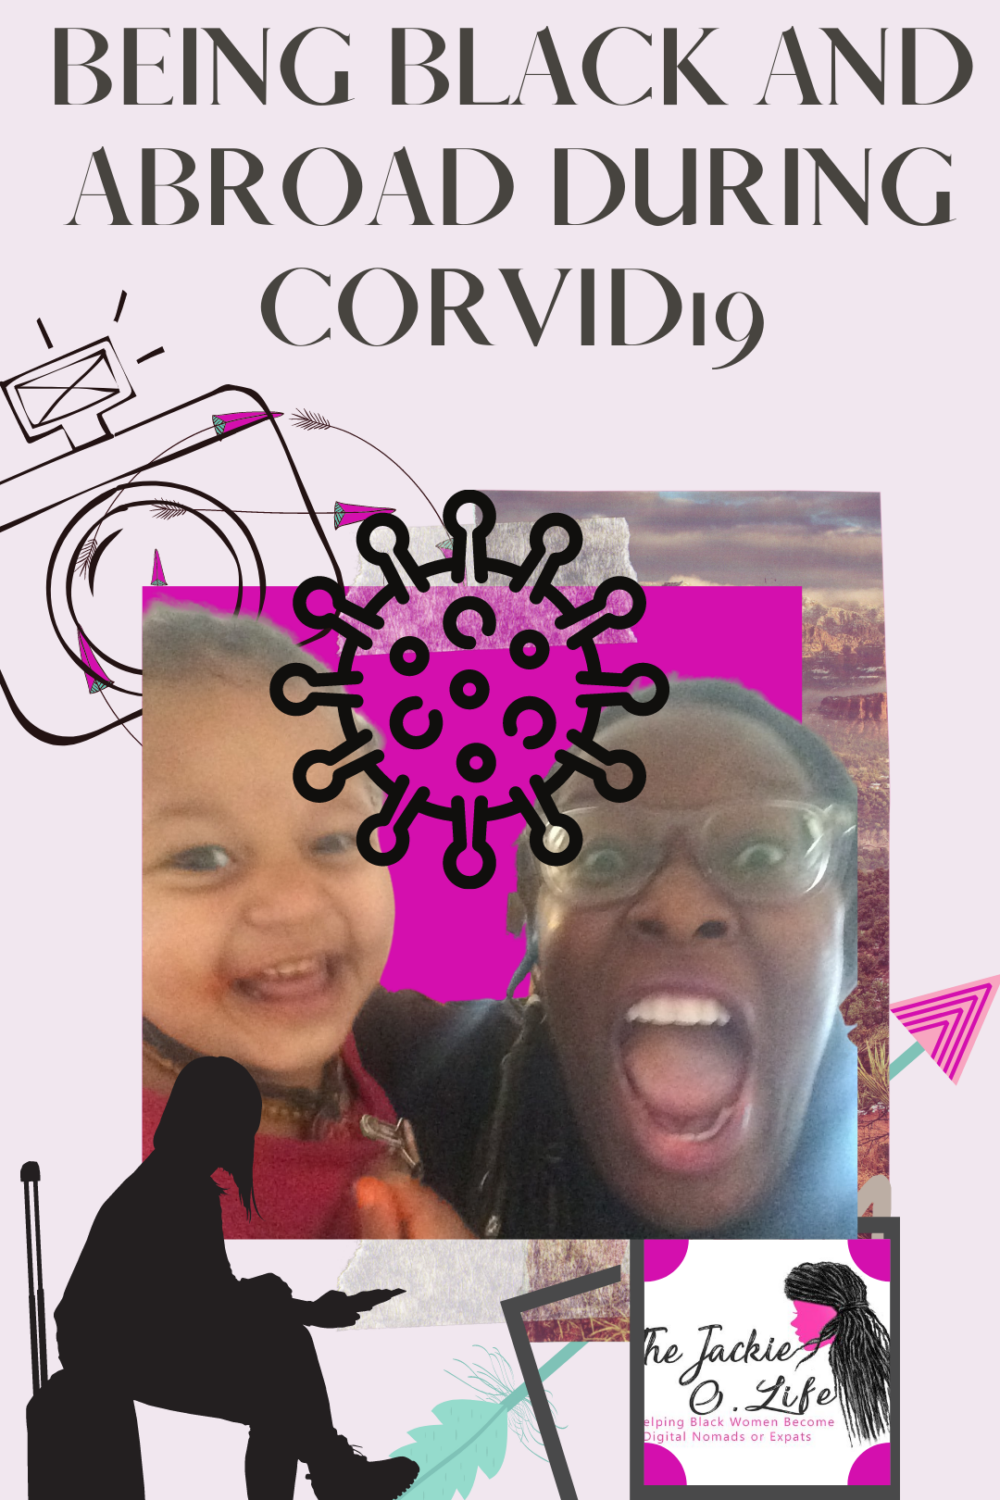 BEING BLACK AND ABROAD DURING CORVID 19